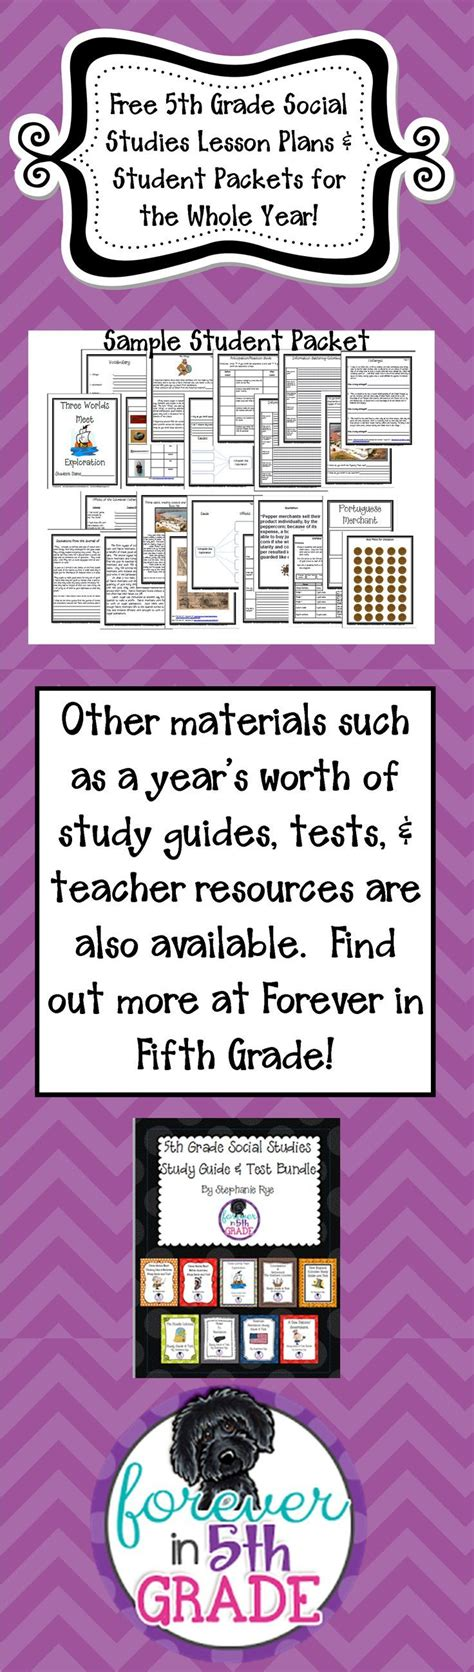 Free Lesson Plans And Student Packets For The Whole Year! Find Out More At Forever In Fifth